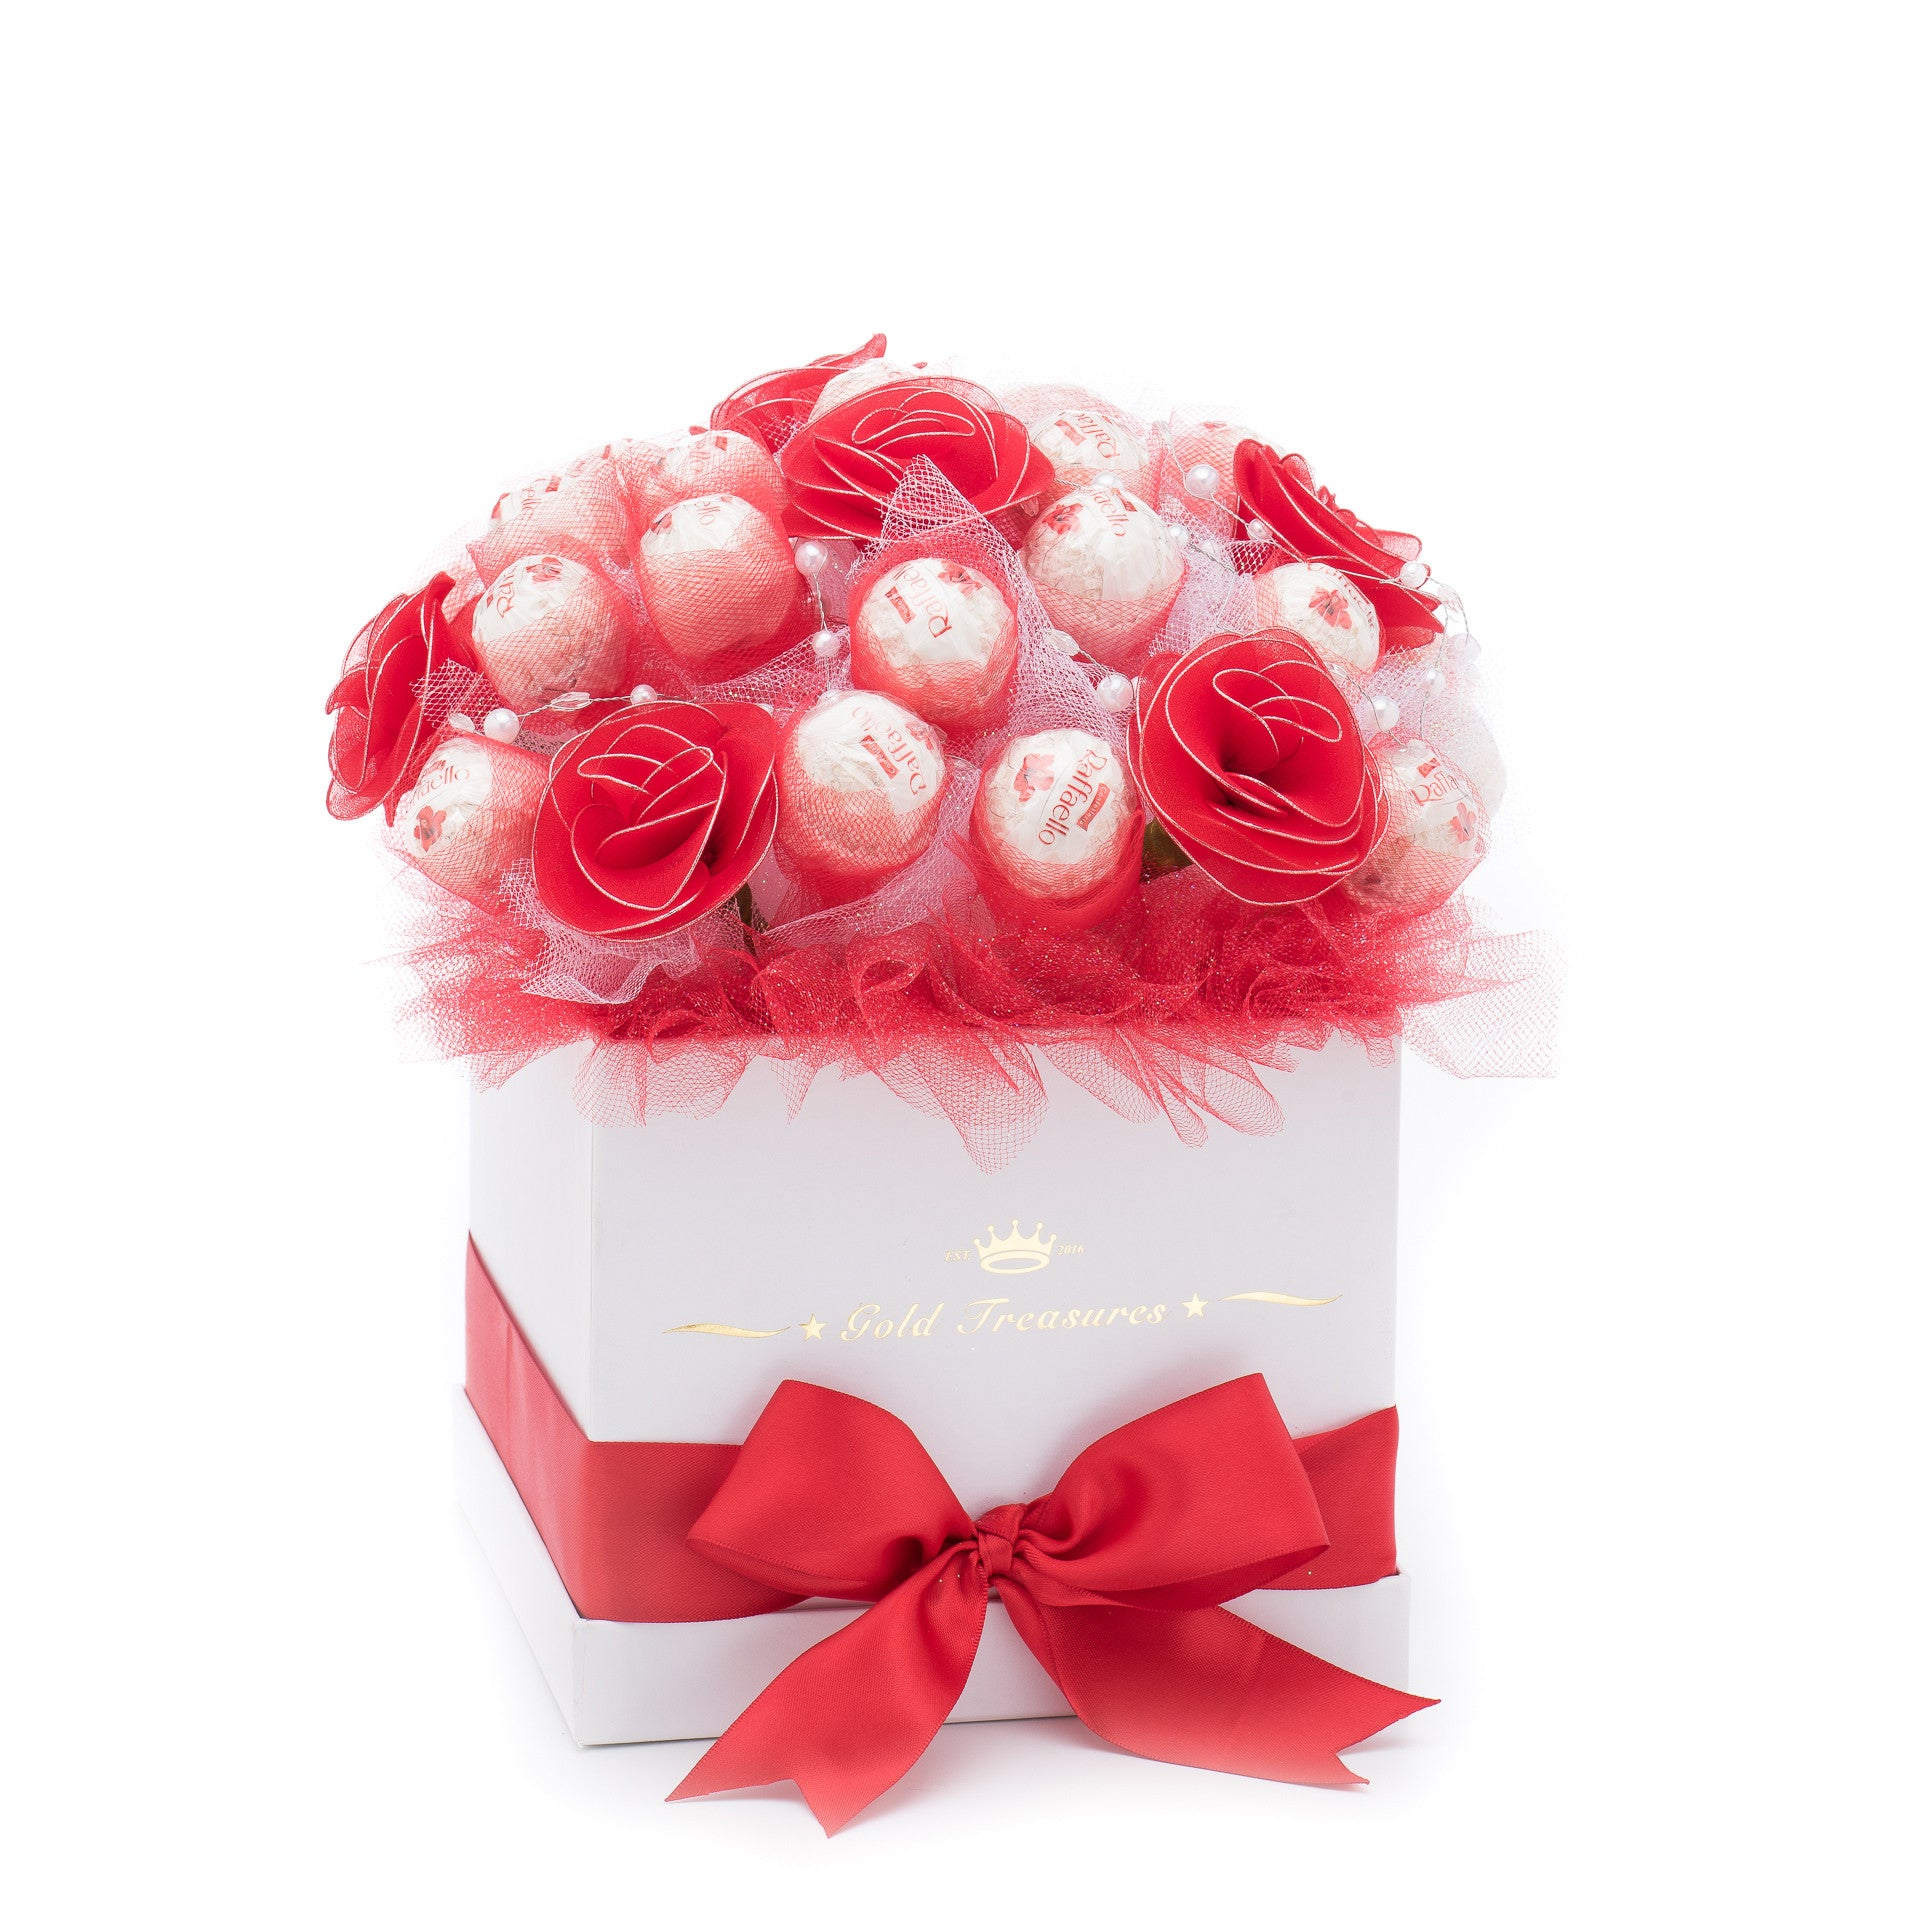 Red-Rose Chocolate Edible Bloom with 25 Raffaello Chocolates